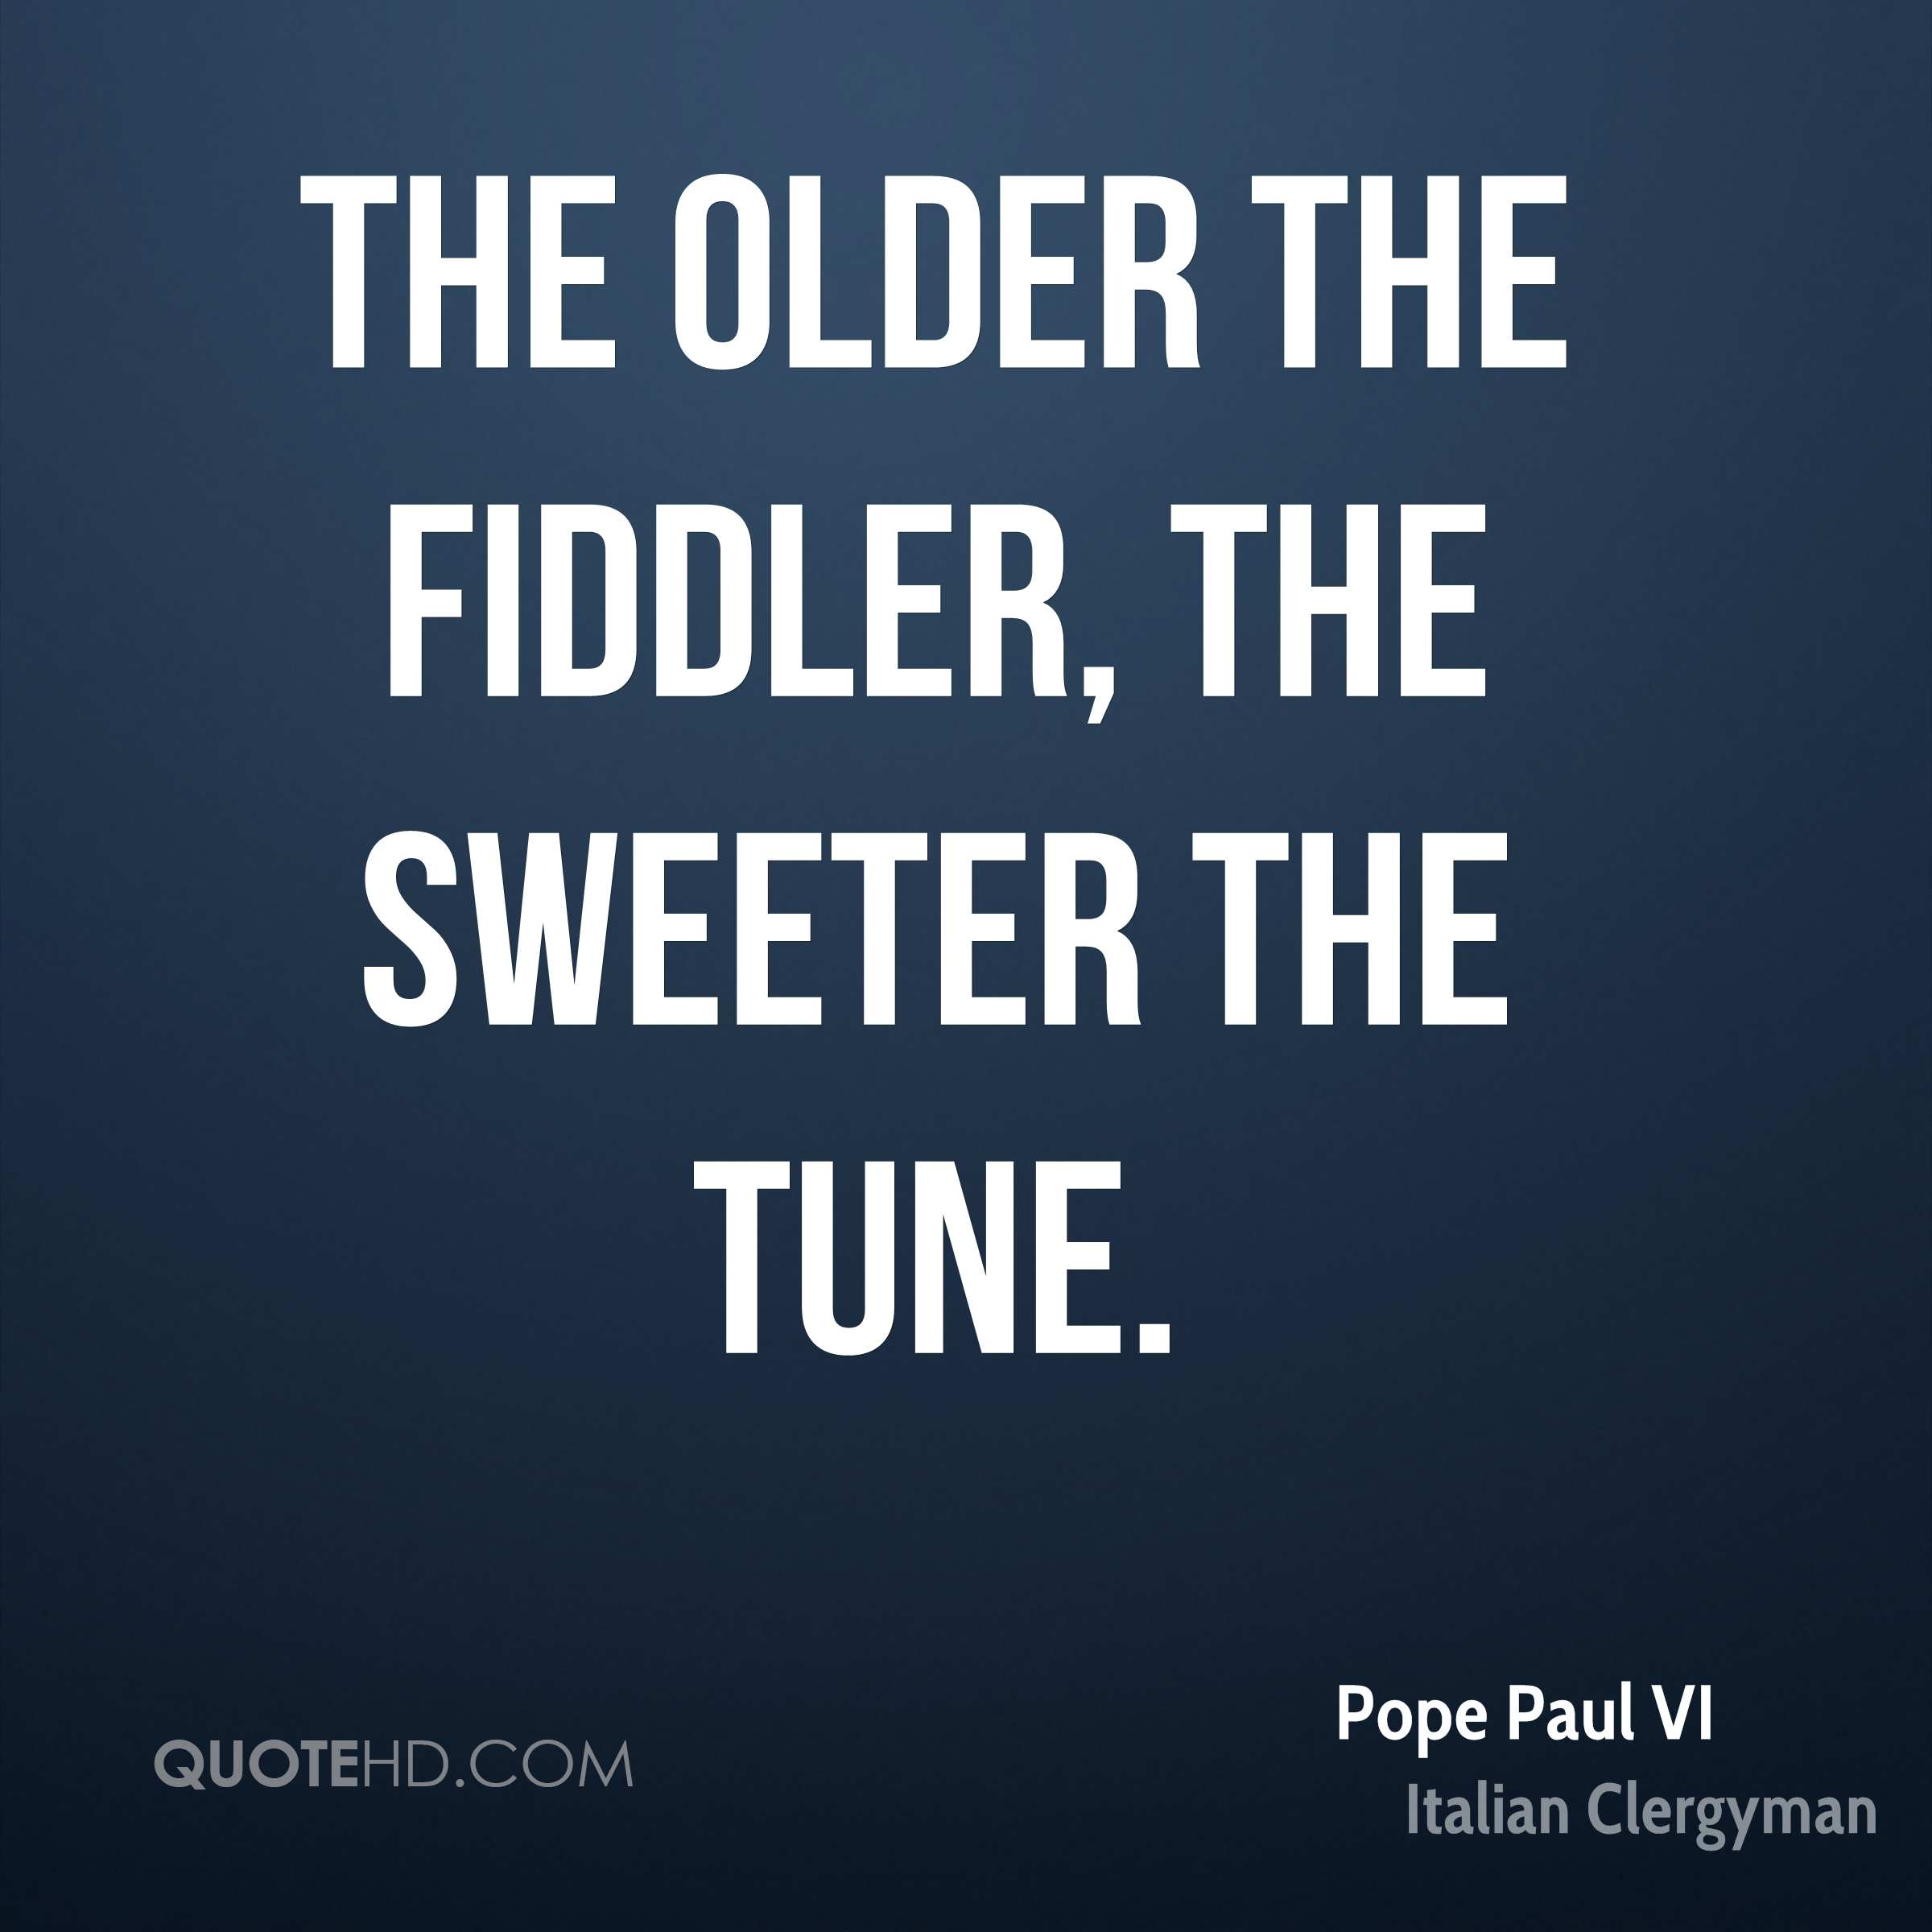 The older the fiddler, the sweeter the tune.